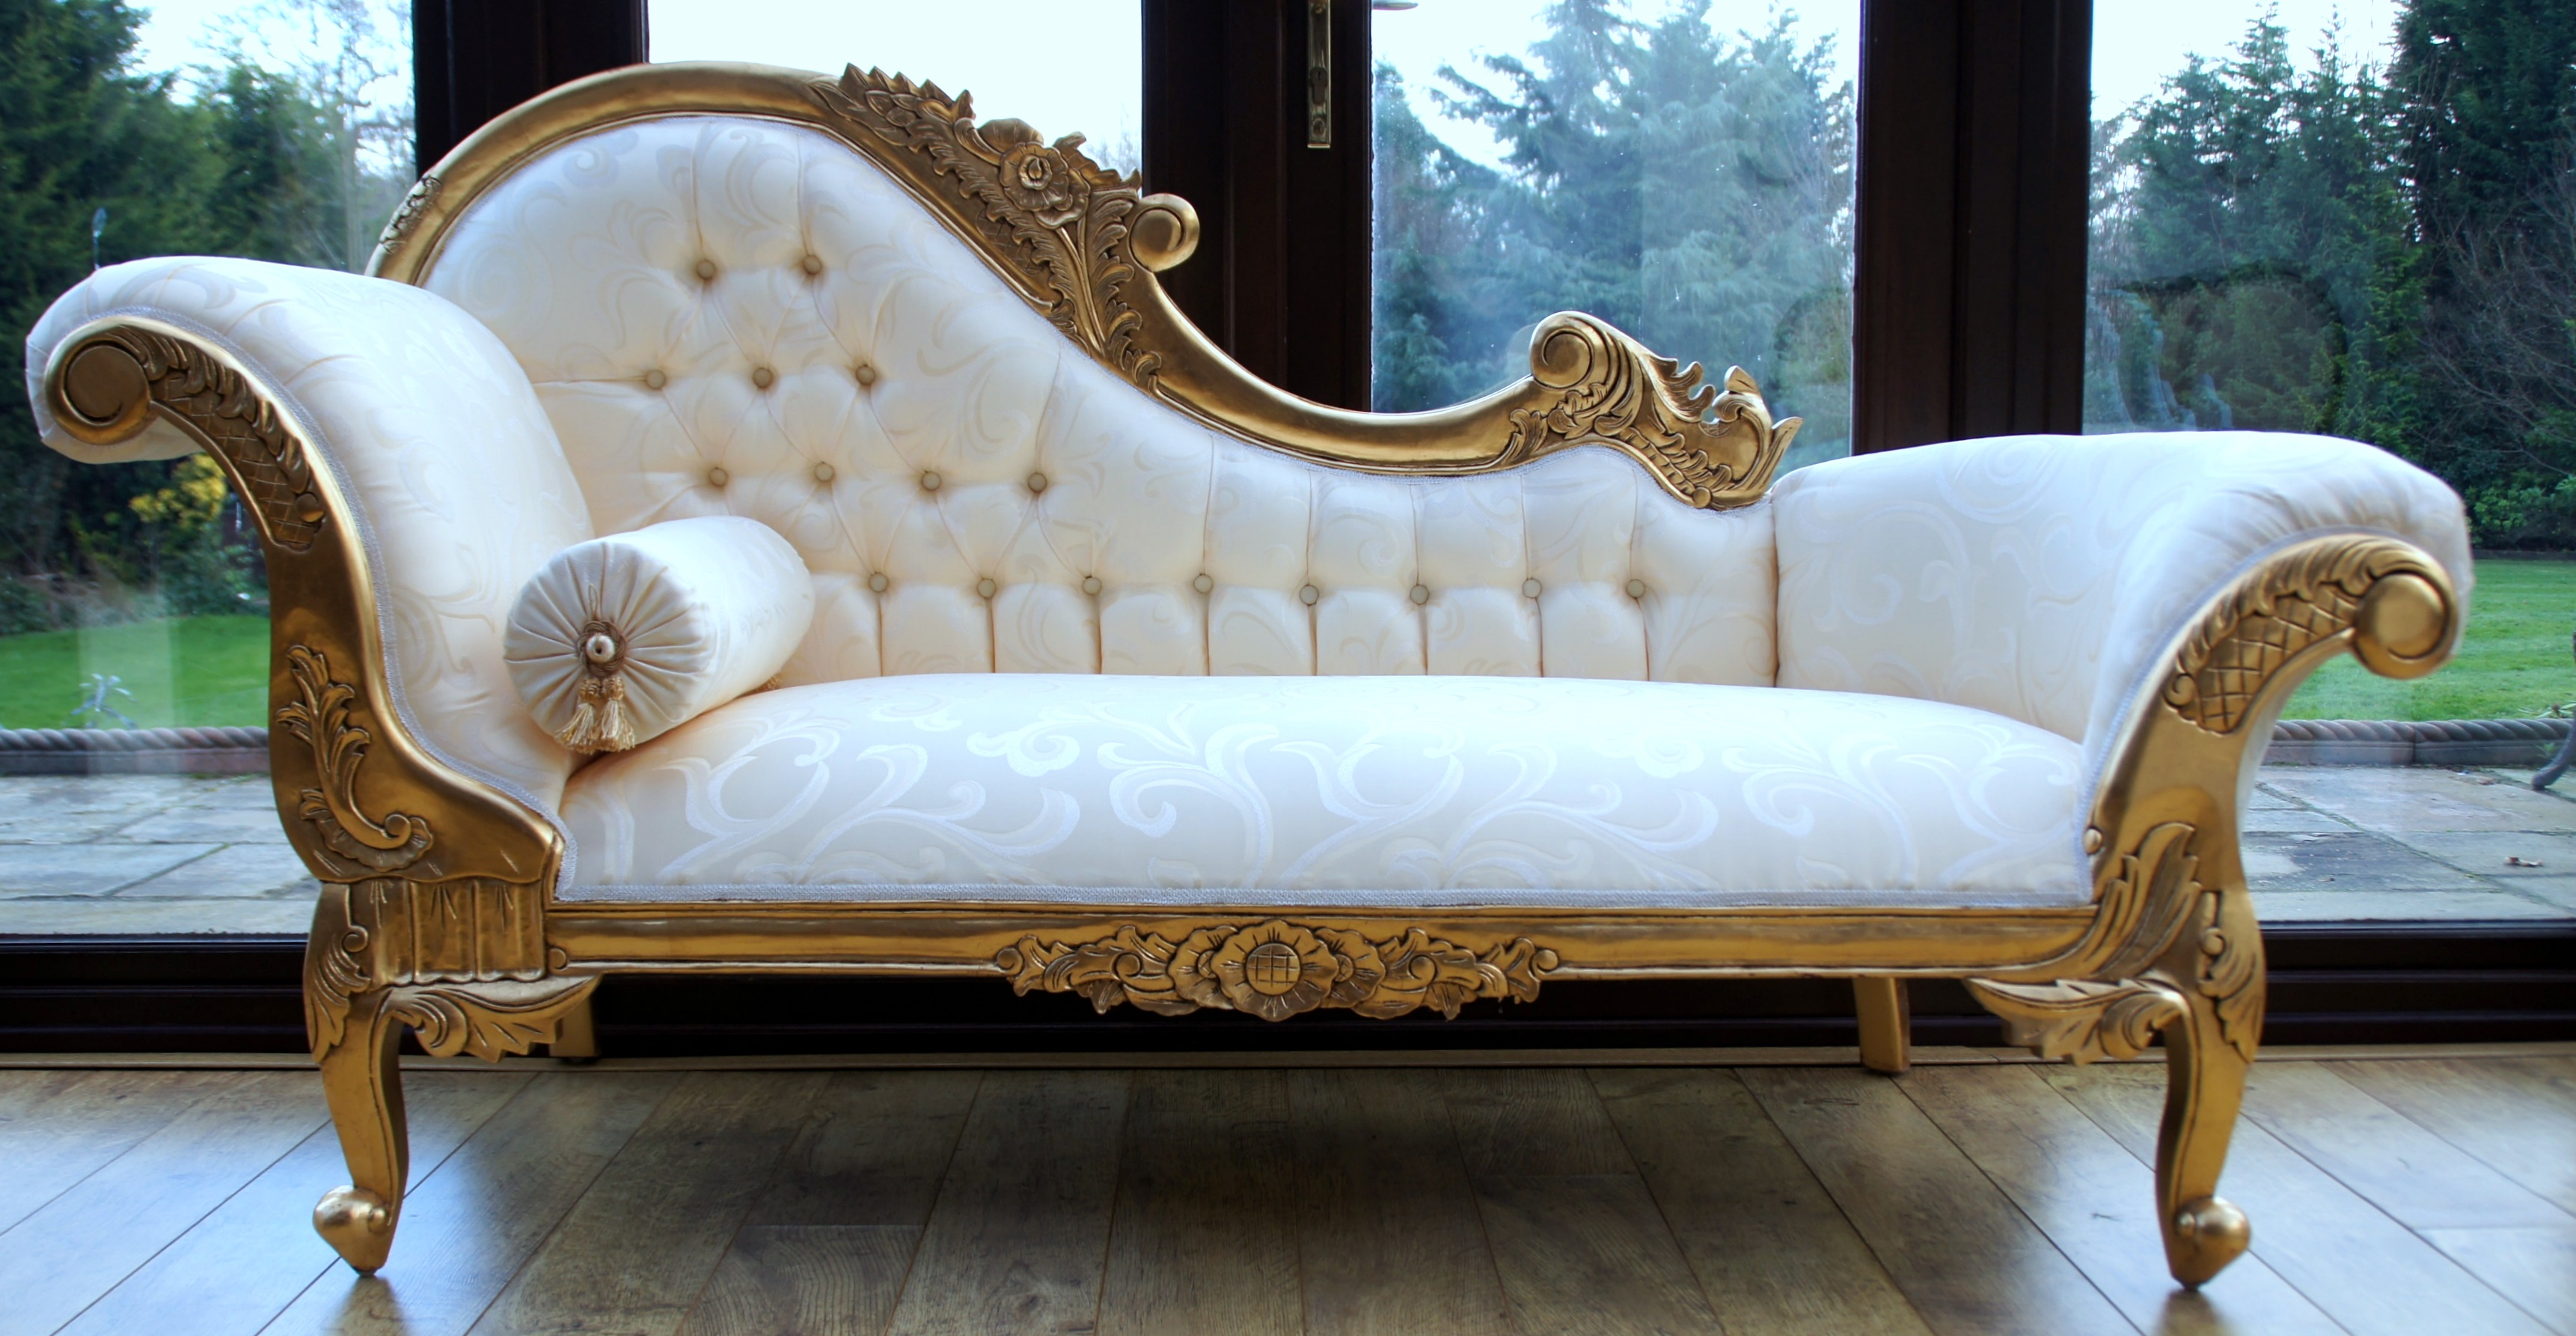 gilded gold furniture